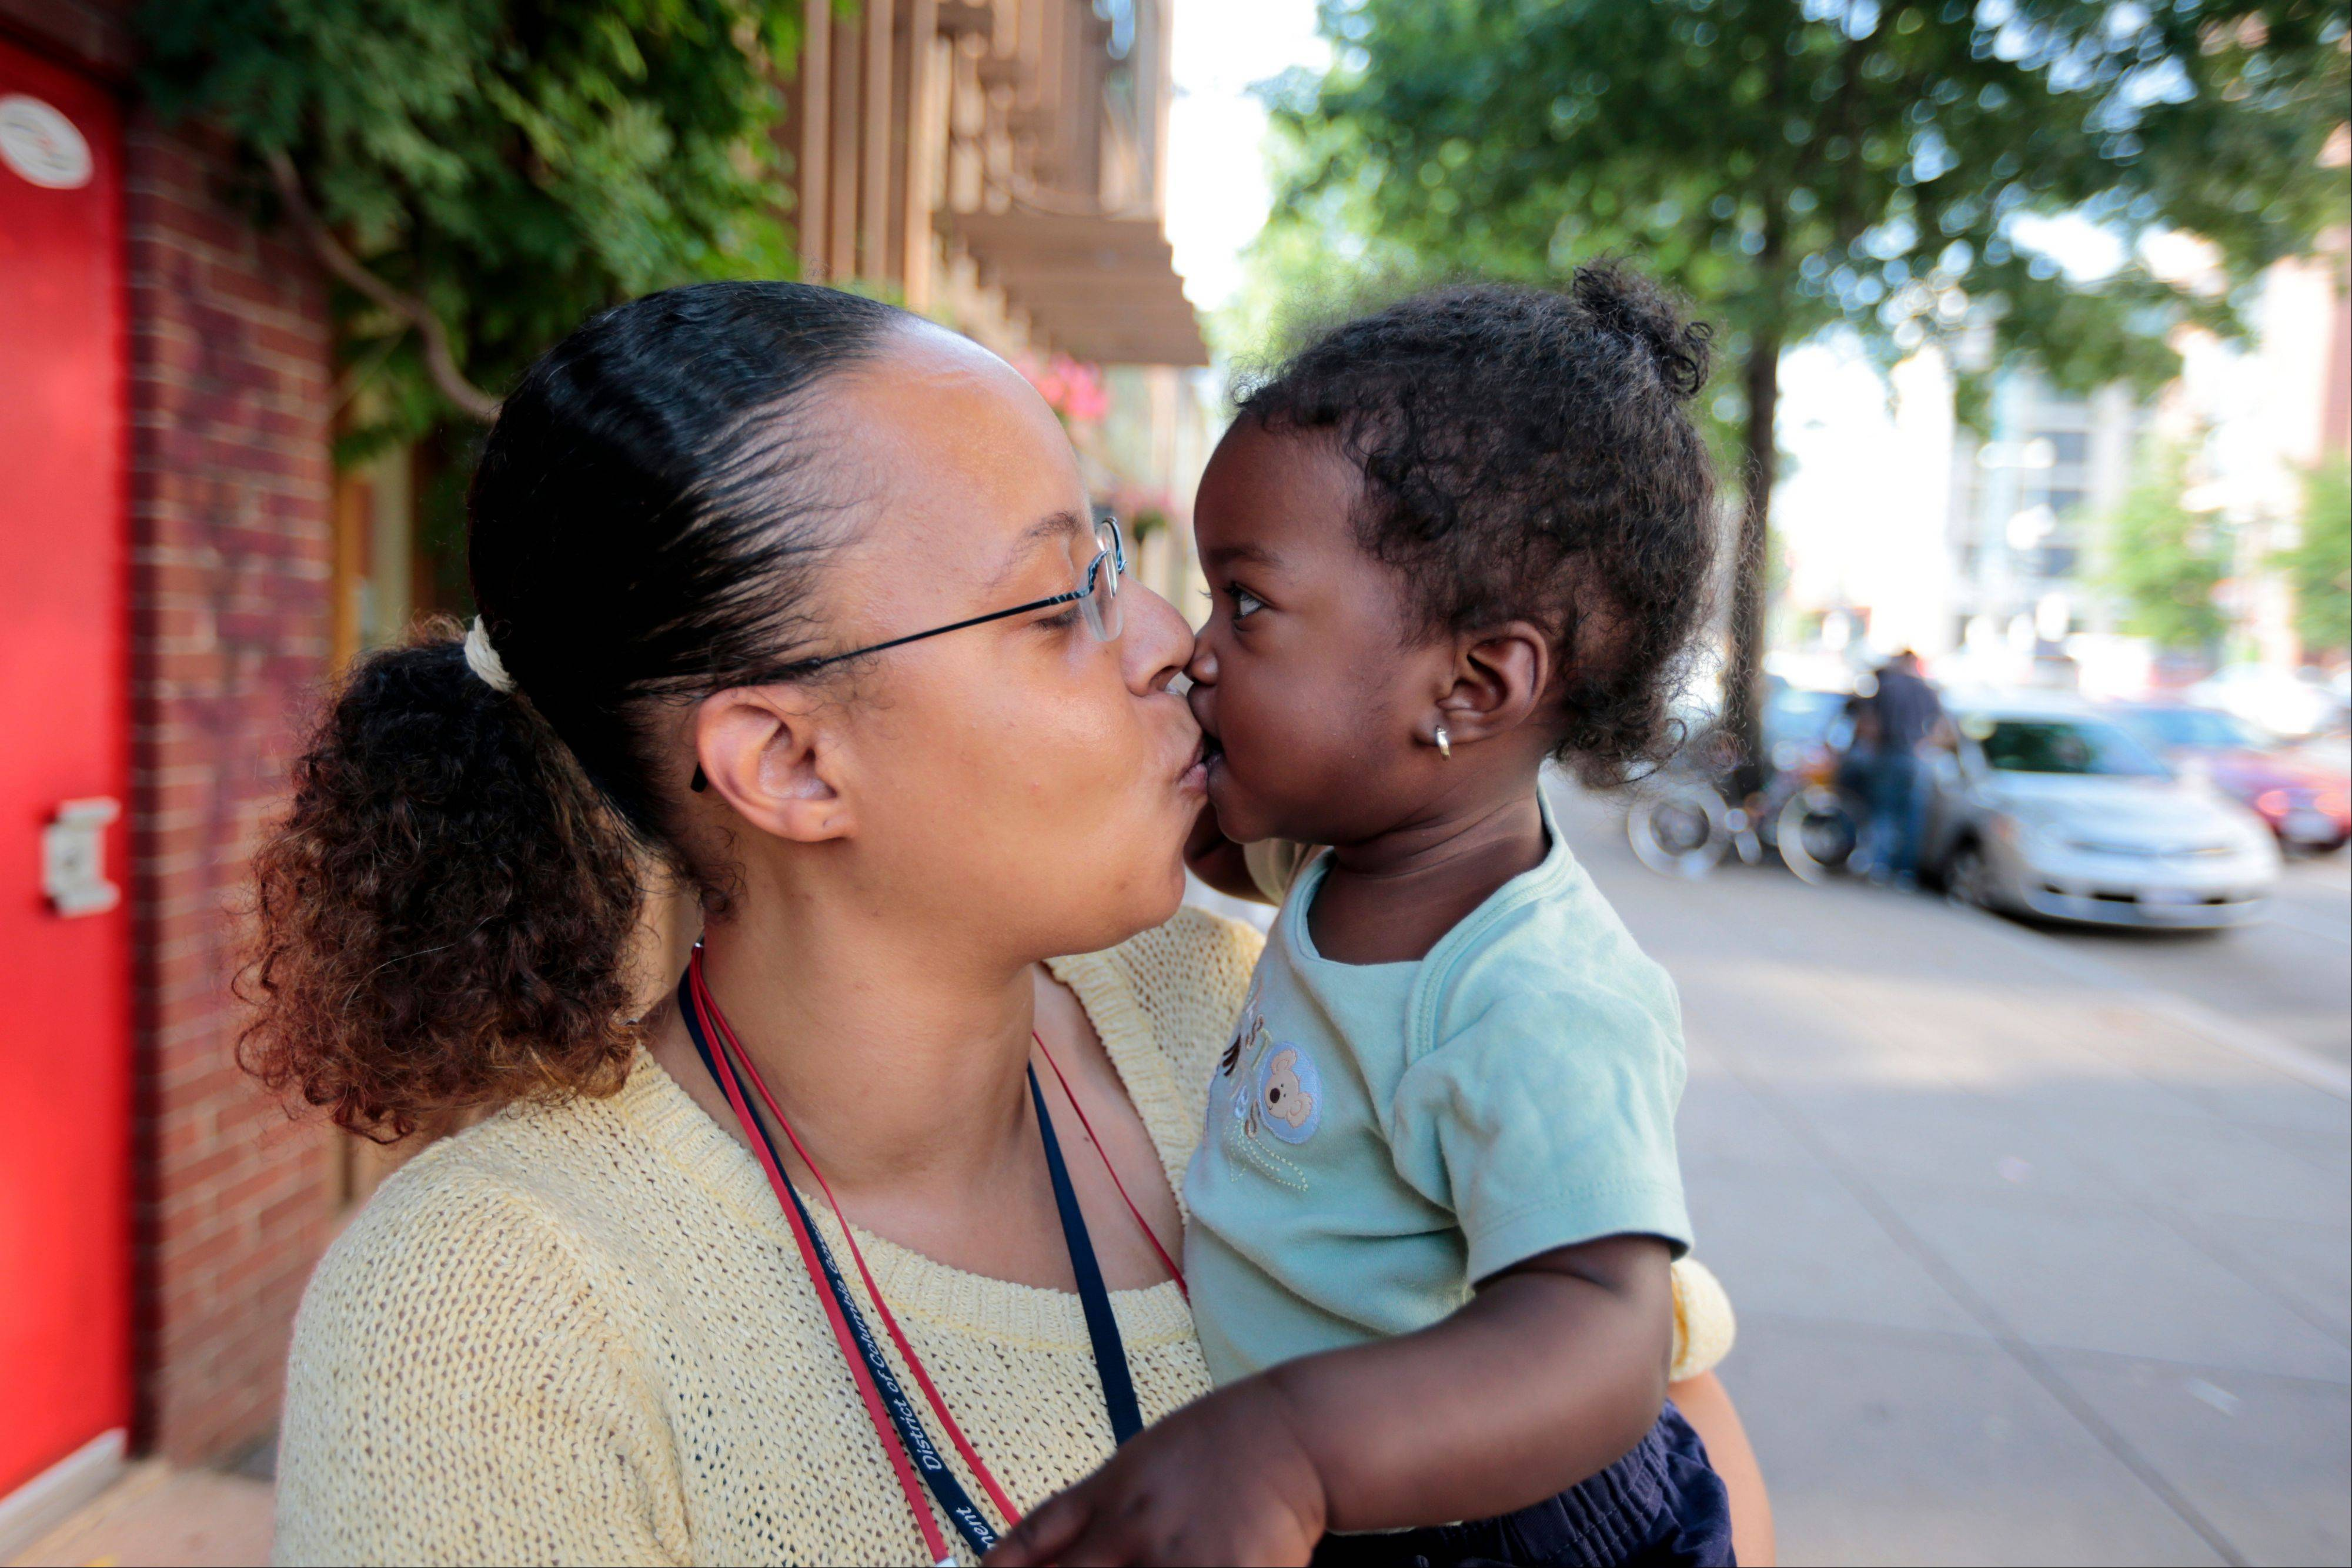 Ke'sha Scrivner, left, kisses her daughter as they pose for a photograph after picking up her daughter Ka'Lani Scrivner, 1, from day care, Tuesday, July 9, 2013, in Washington. Once on welfare, Scrivner worked her way off by studying early childhood education and landing a full-time job for the District of Columbia�s education superintendent. She sees education as the path to a better life for herself and all five of her children, pushing them to finish high school and continue with college or a trade school.